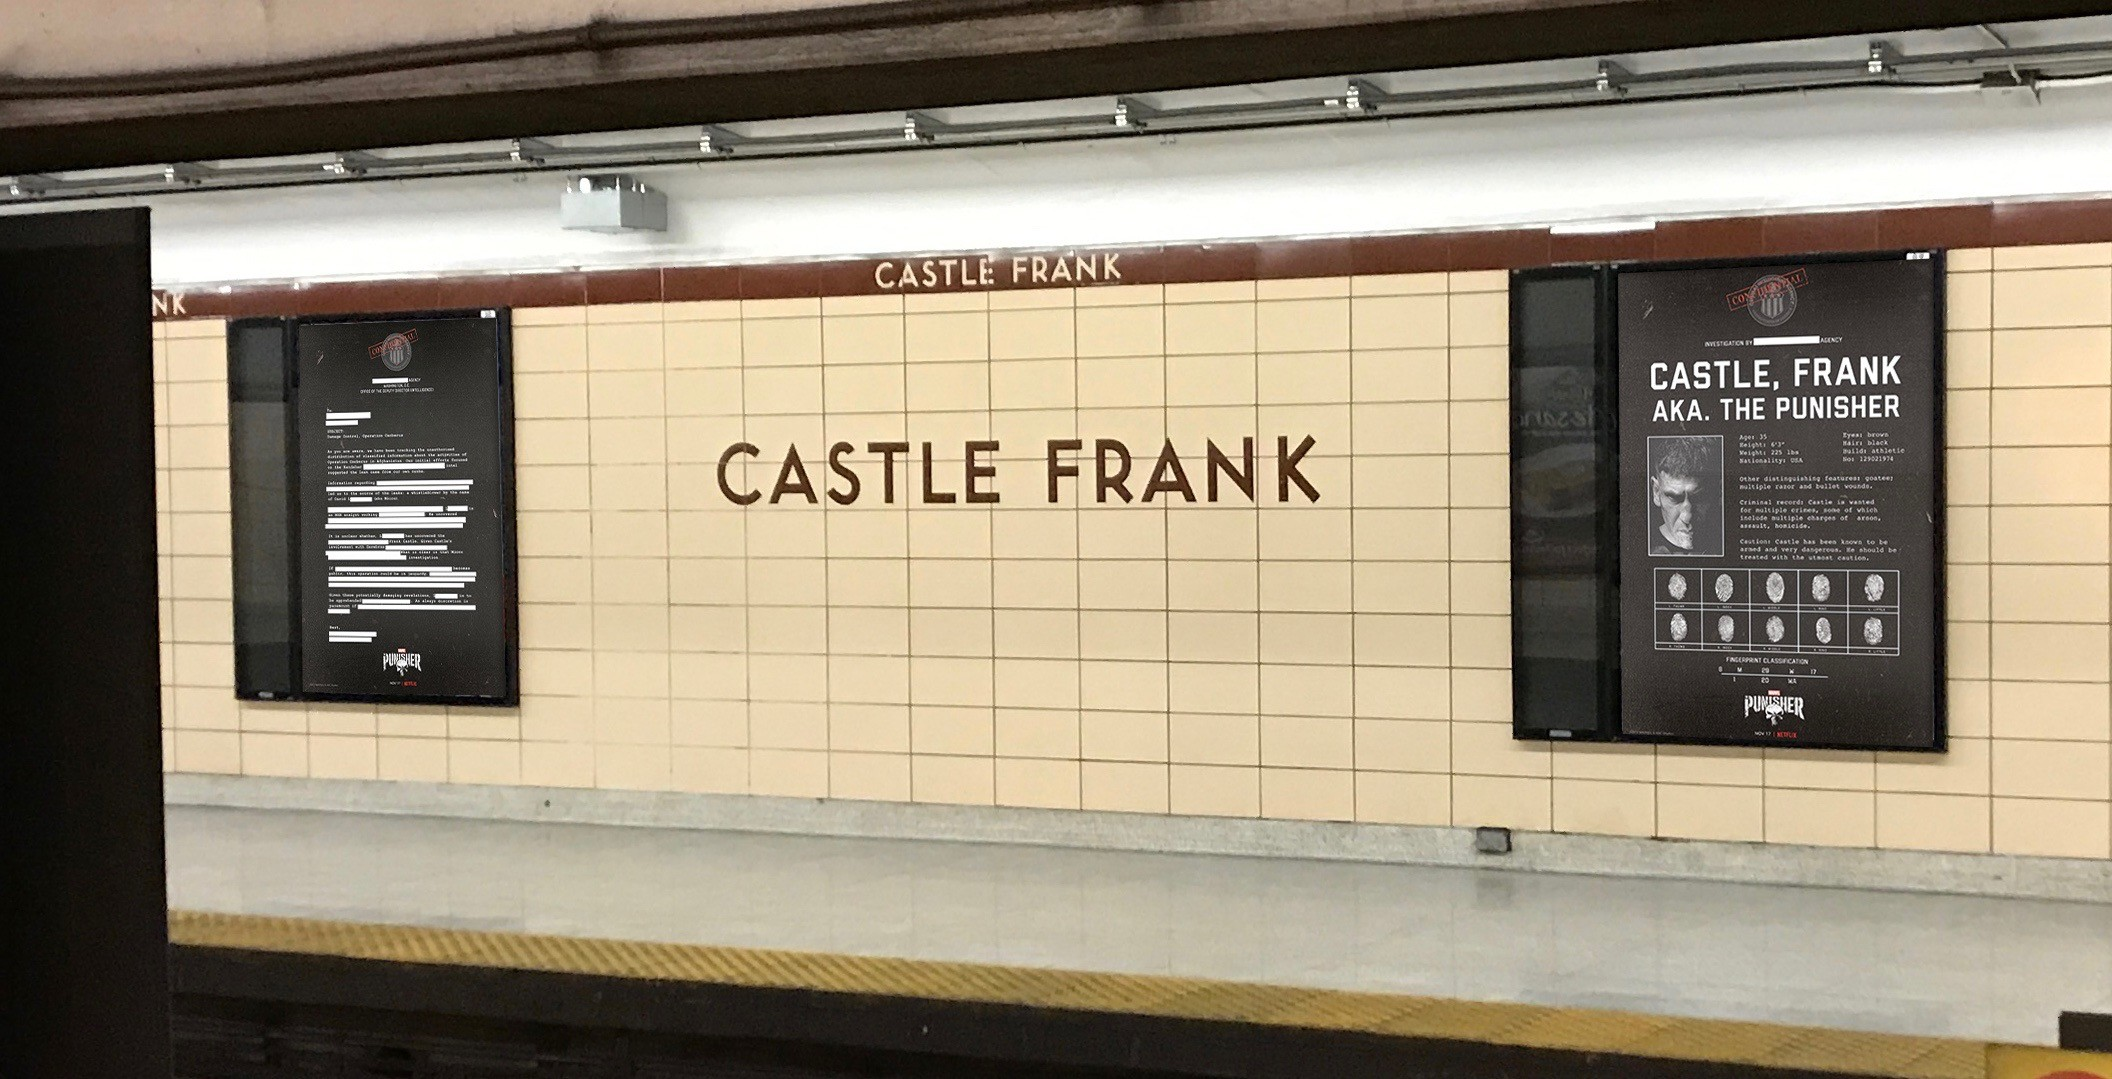 Netflix just outfitted a TTC station in the most clever way (PHOTOS)